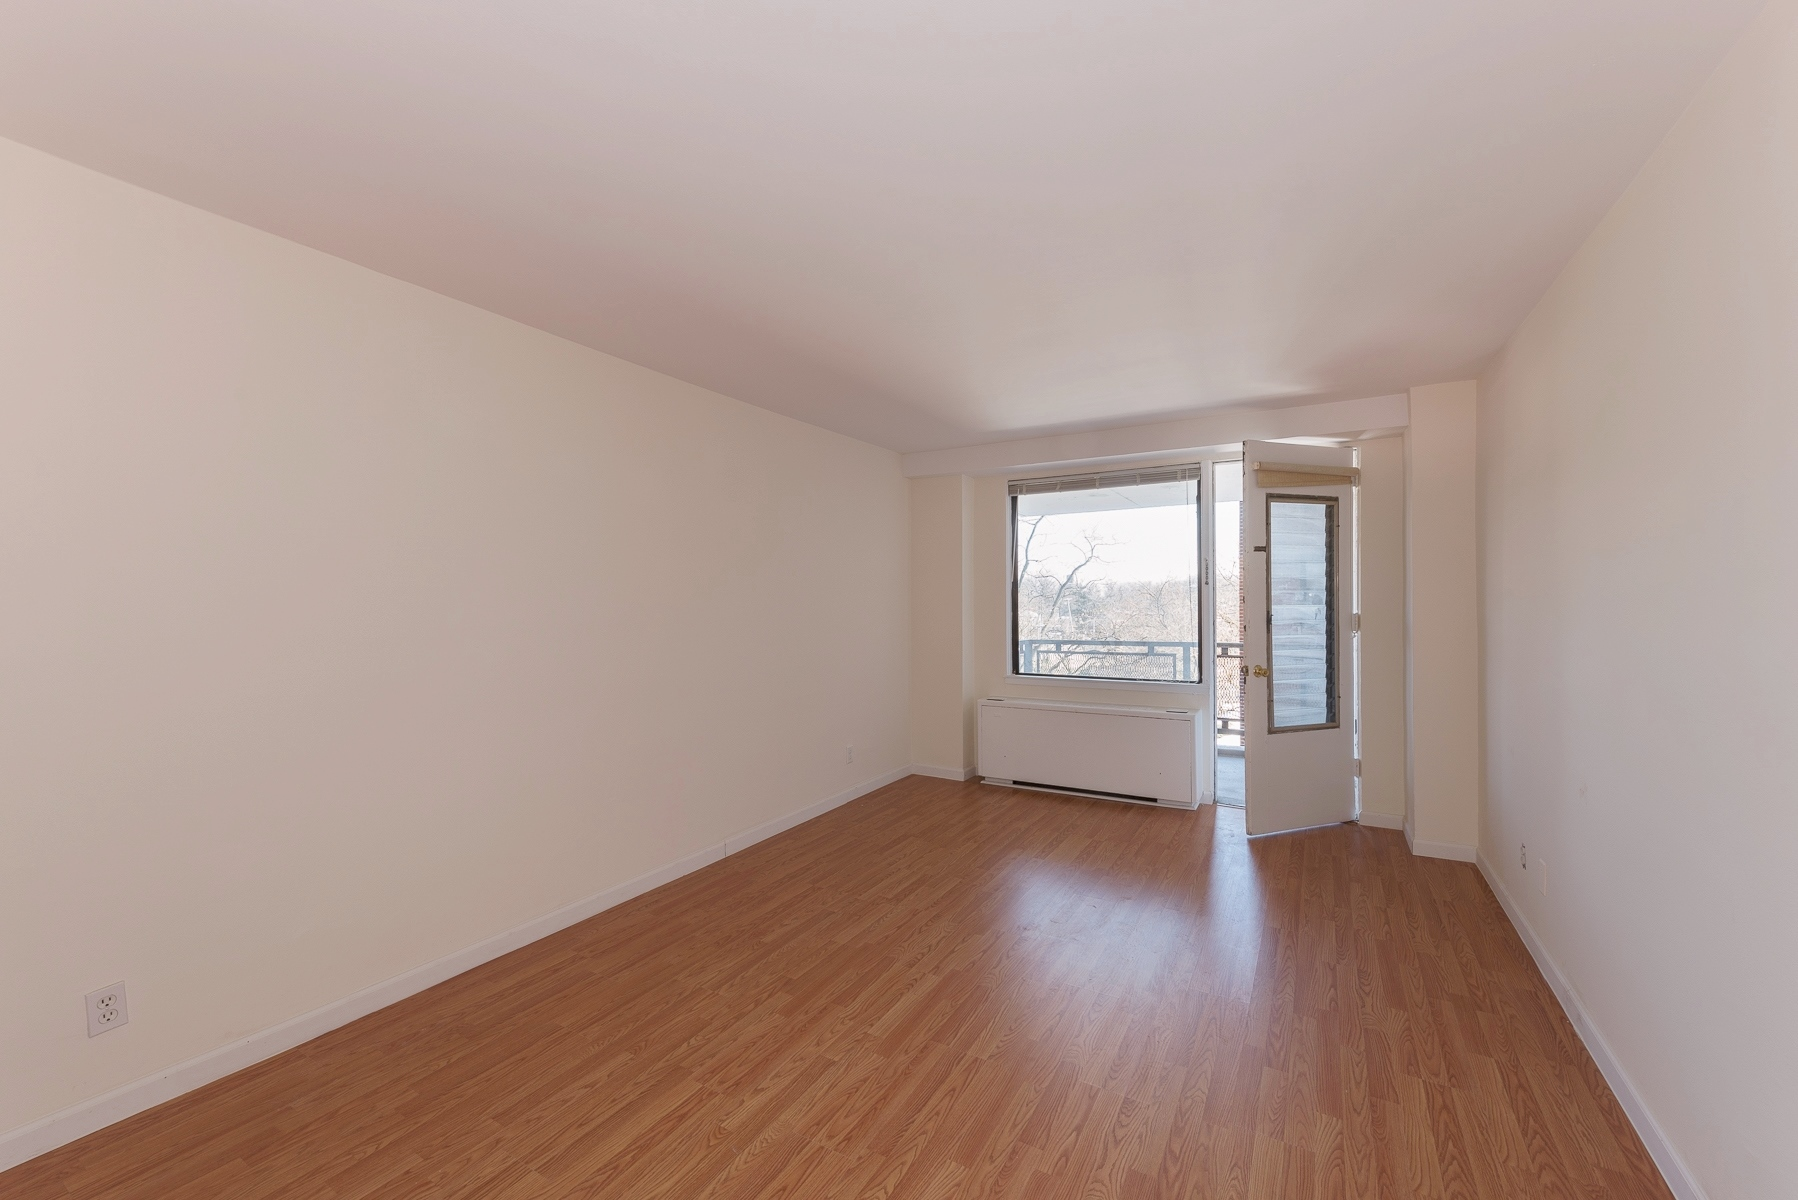 Co-op for Rent at Large 1 BR with Terrace 4705 Henry Hudson Parkway 5F Riverdale, New York 10463 United States